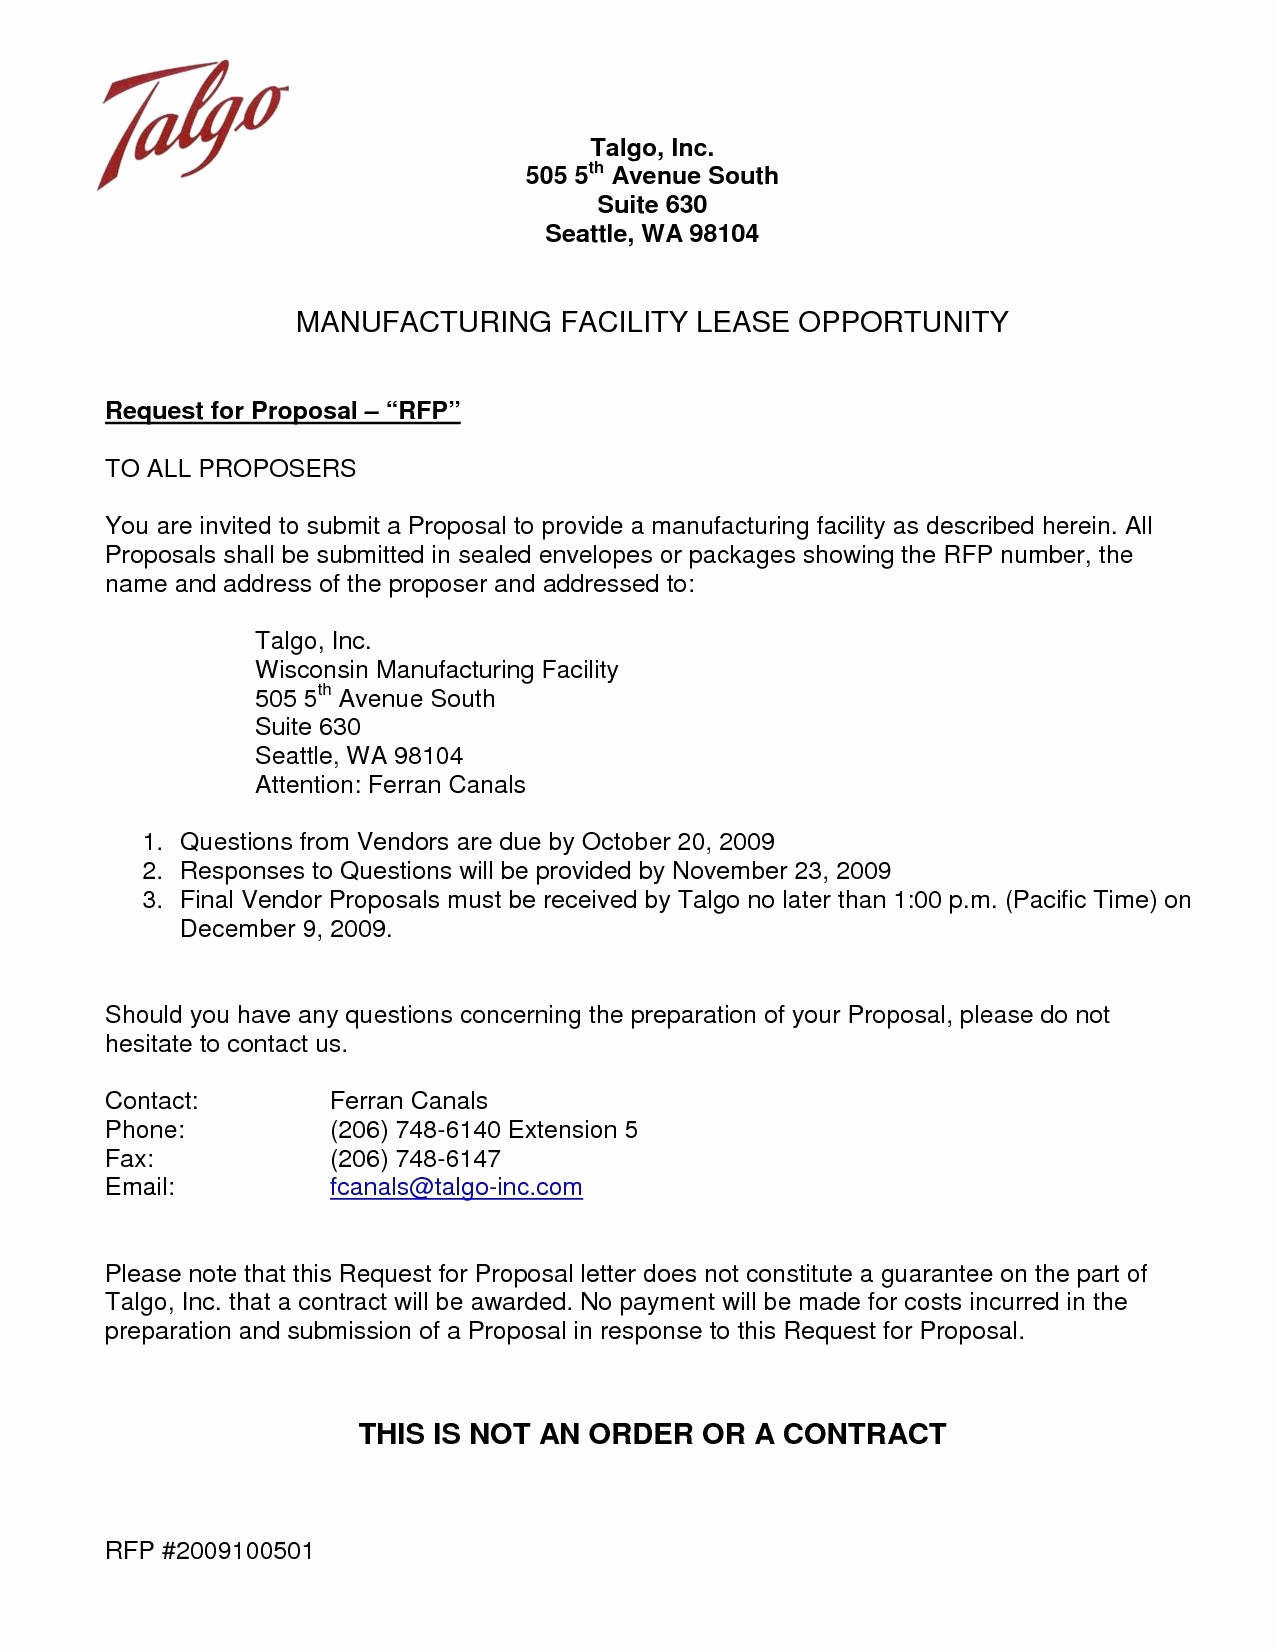 Business Proposal Letter Template Free Download - Business Proposal Offer Letter Template Business Proposal Letter to